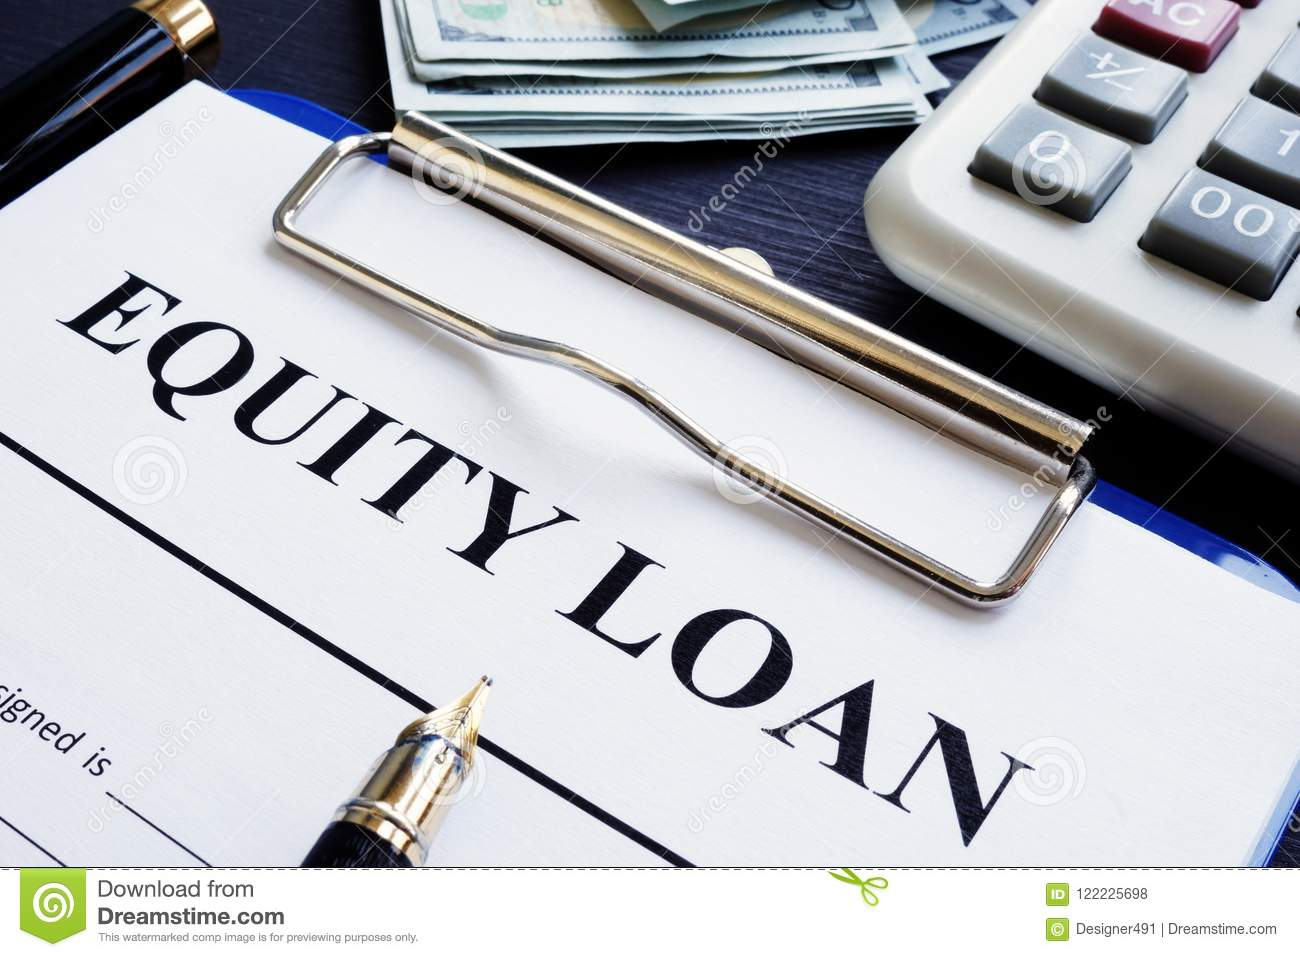 Equity loan application and calculator.